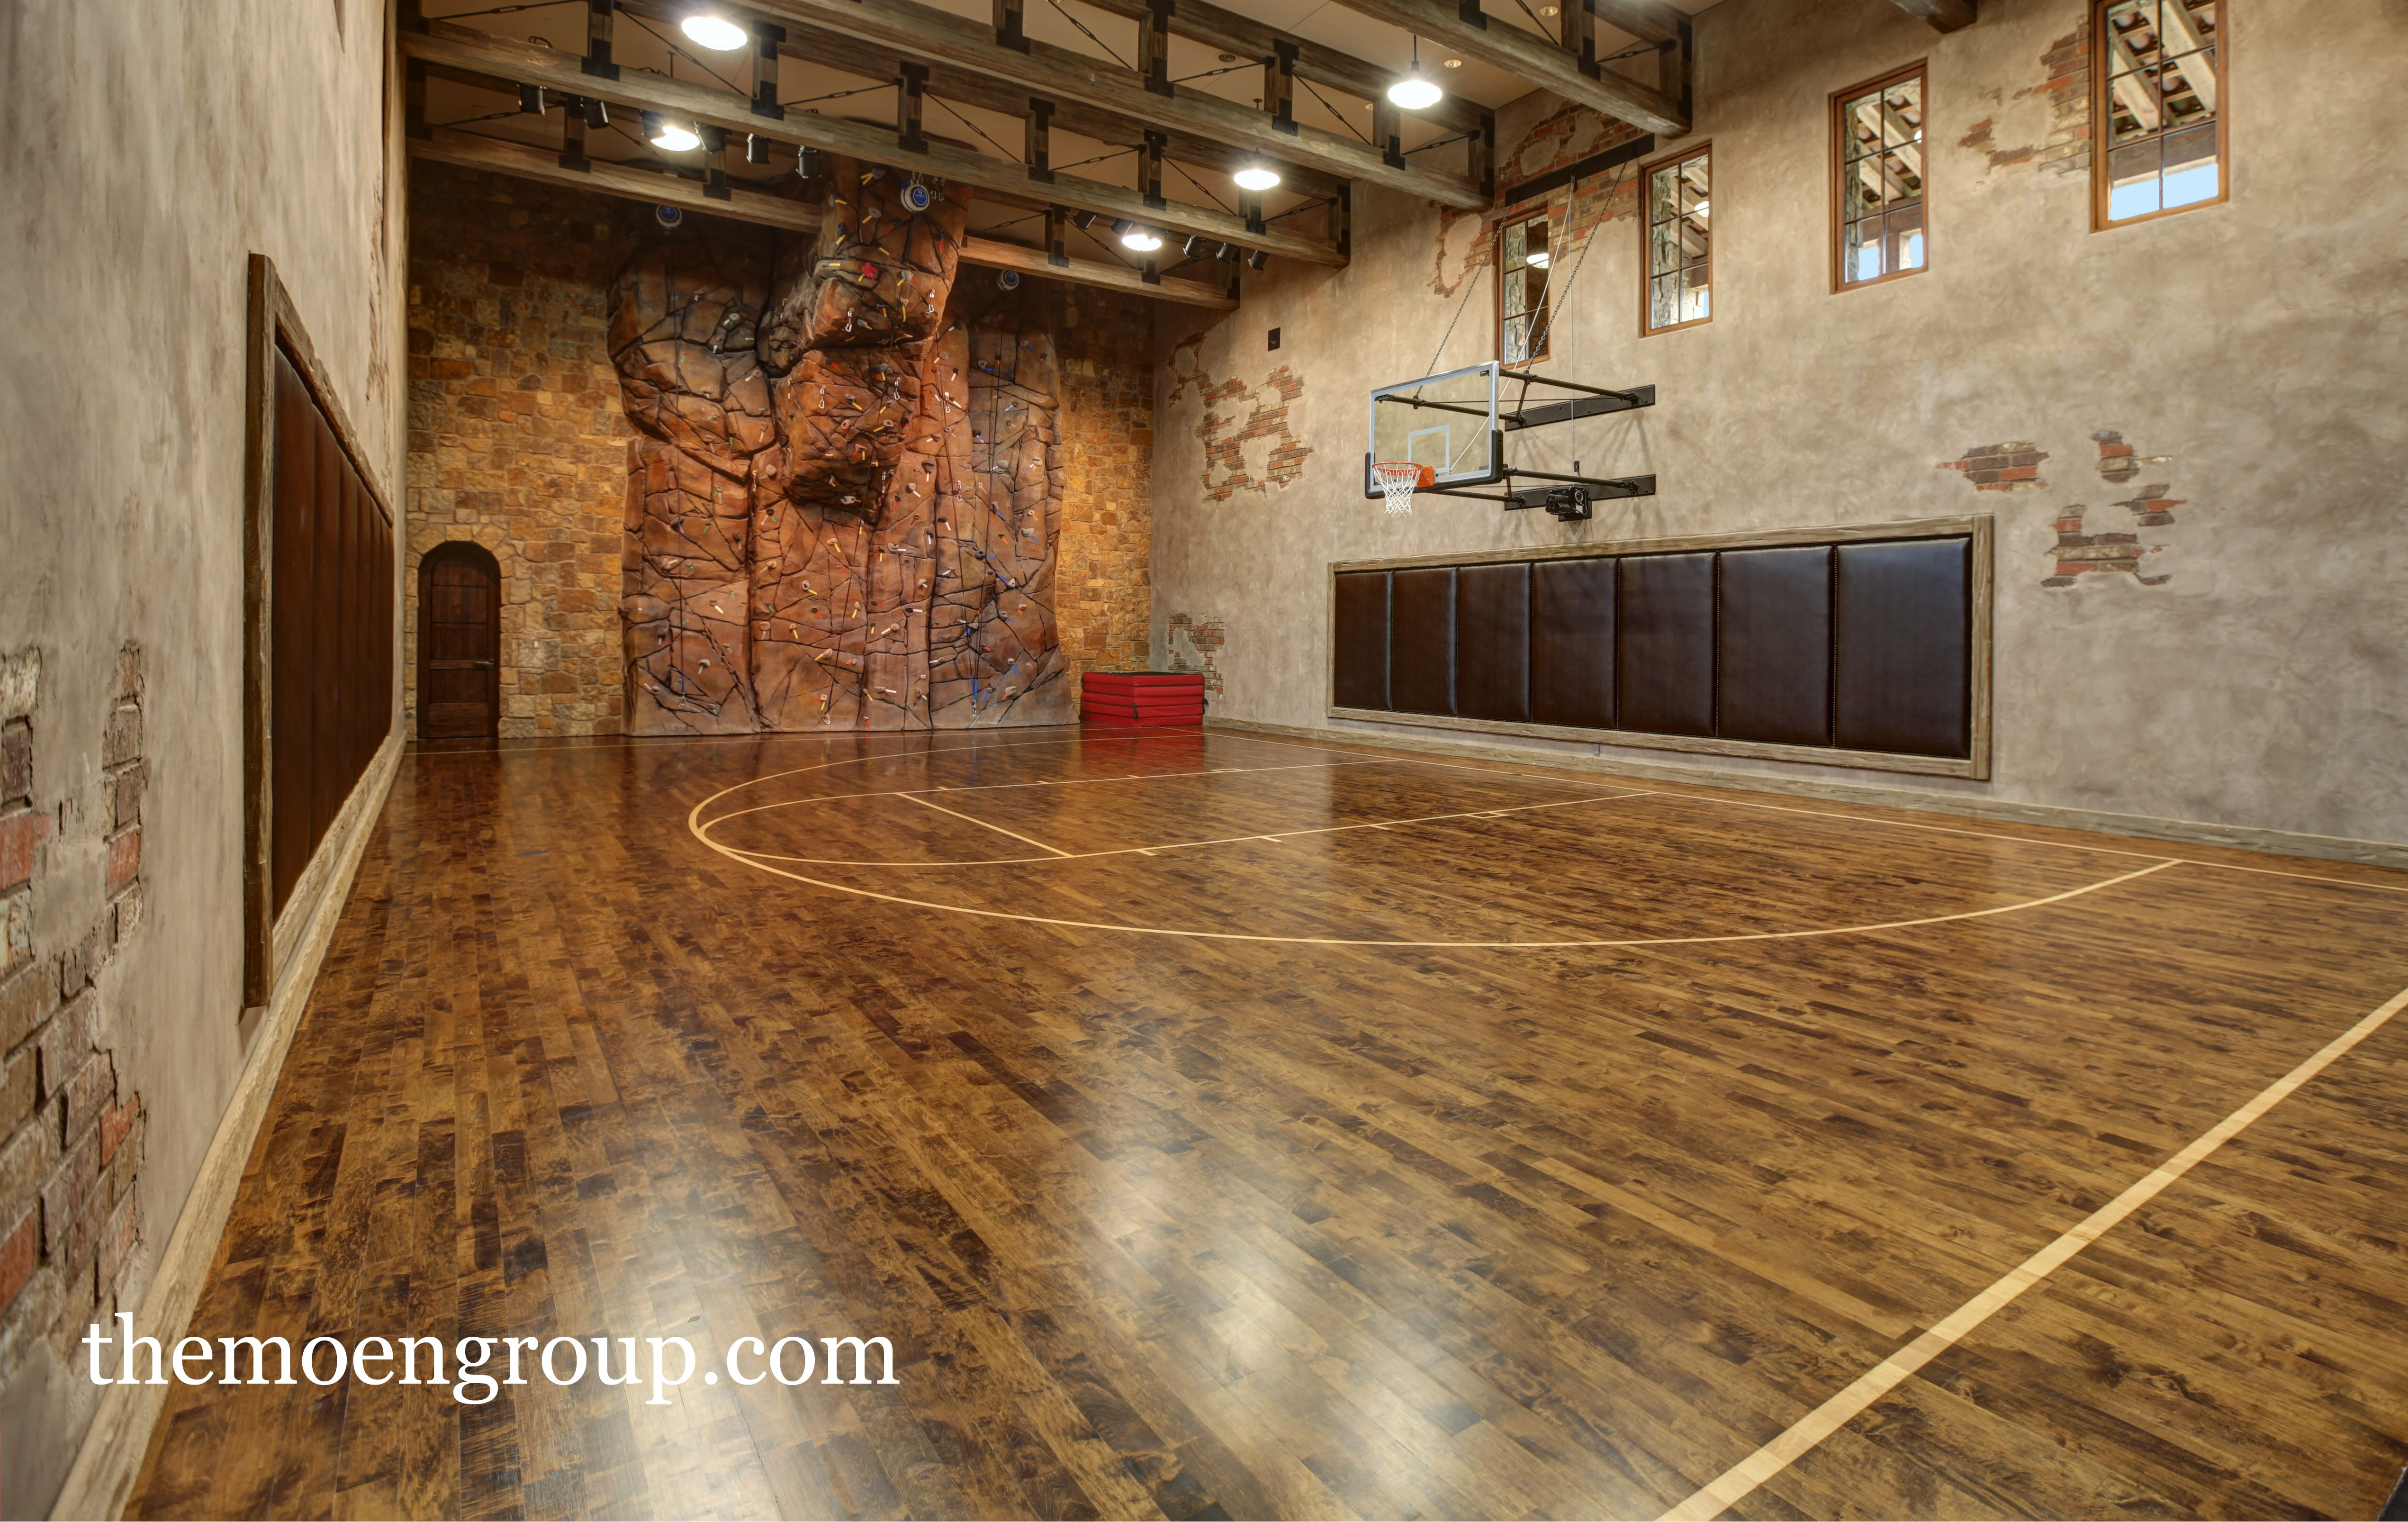 Indoor Basketball court | HOUSE_Indoor basketball | Pinterest ...